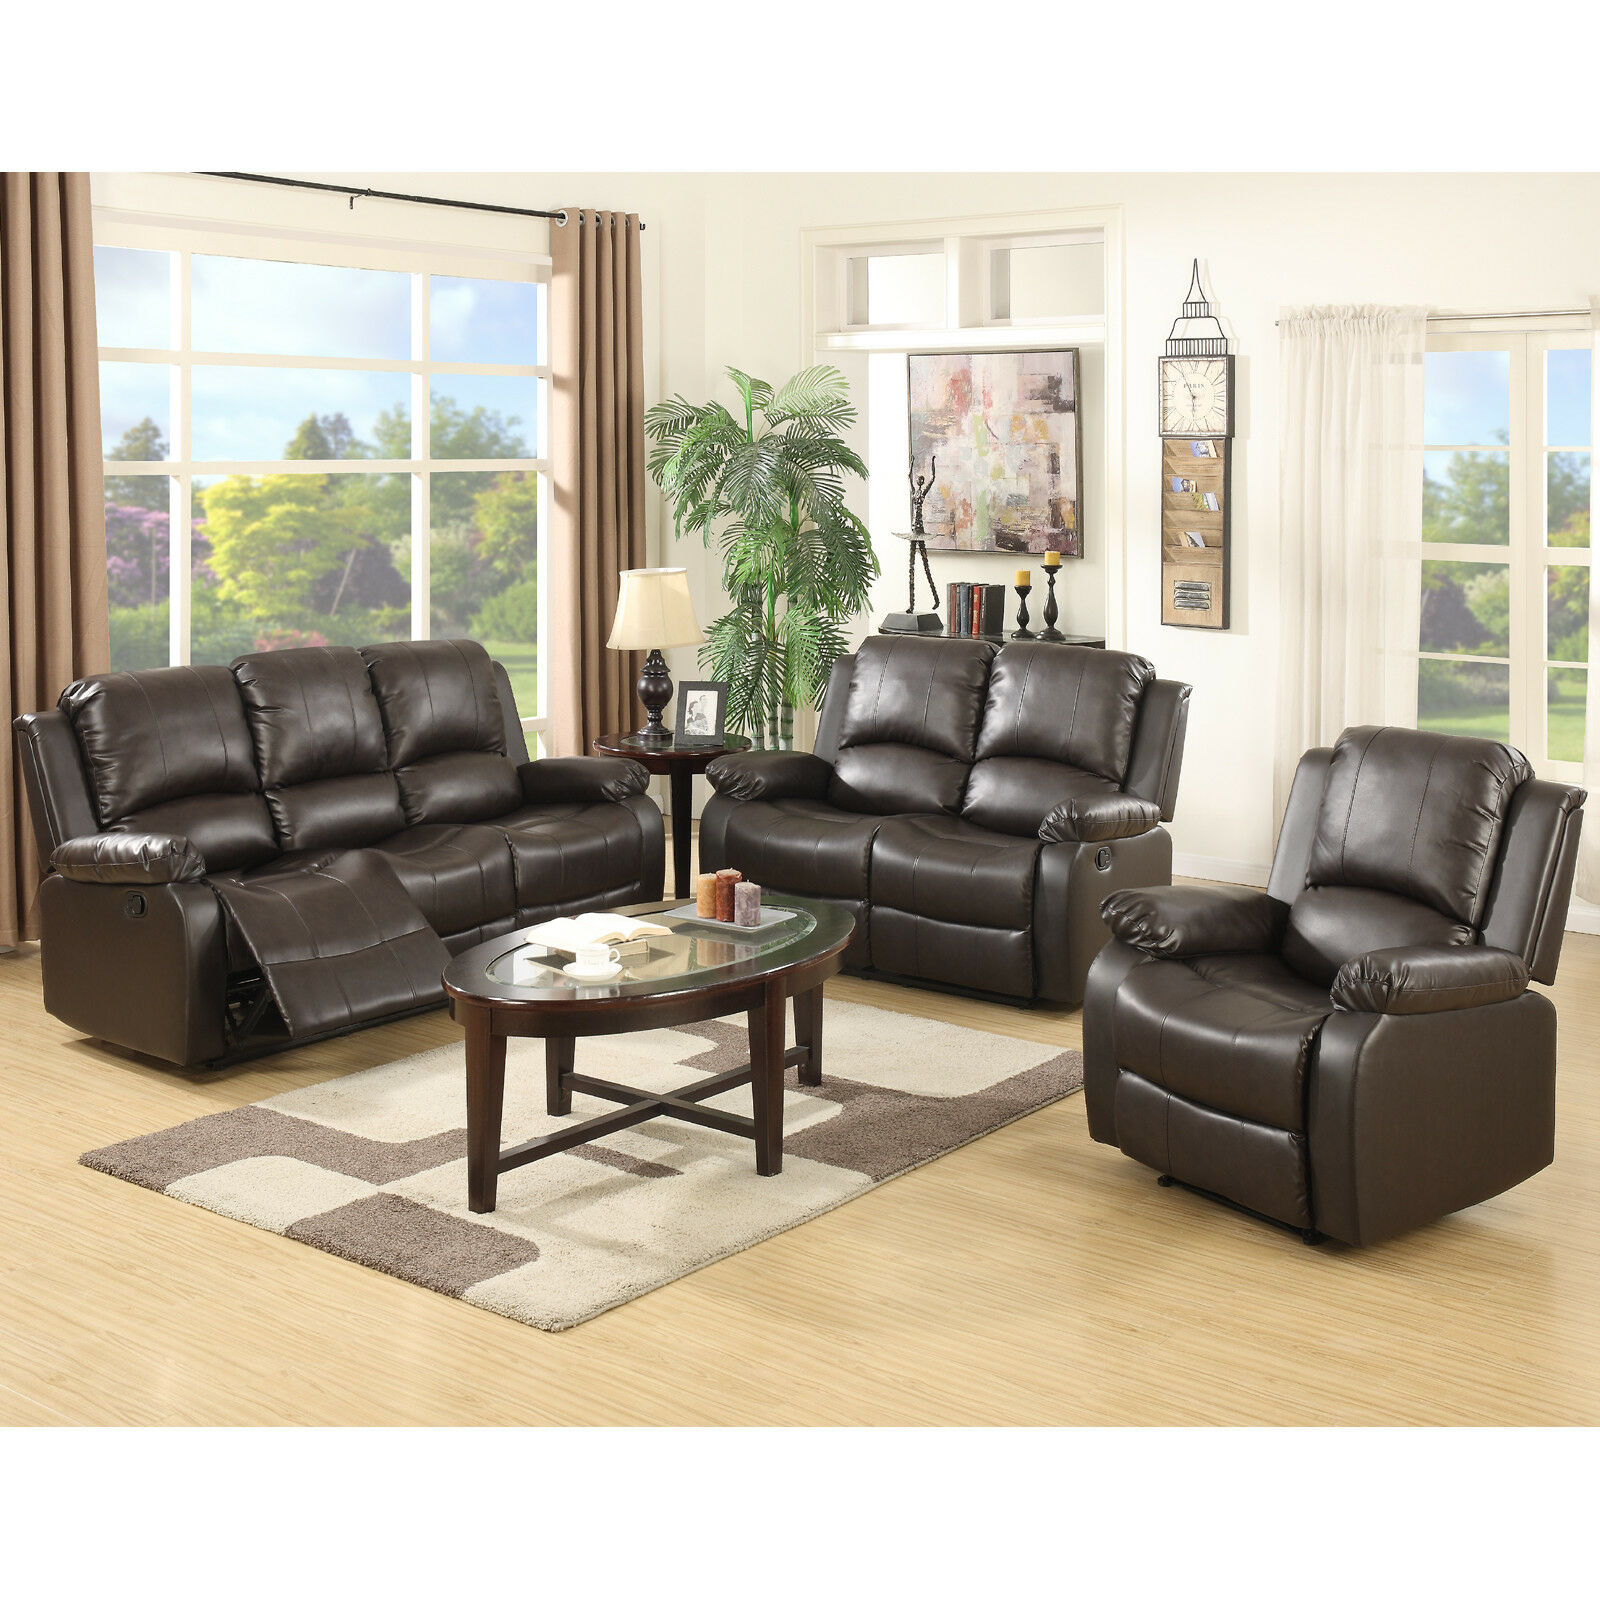 3 Set Sofa Loveseat Chaise Couch